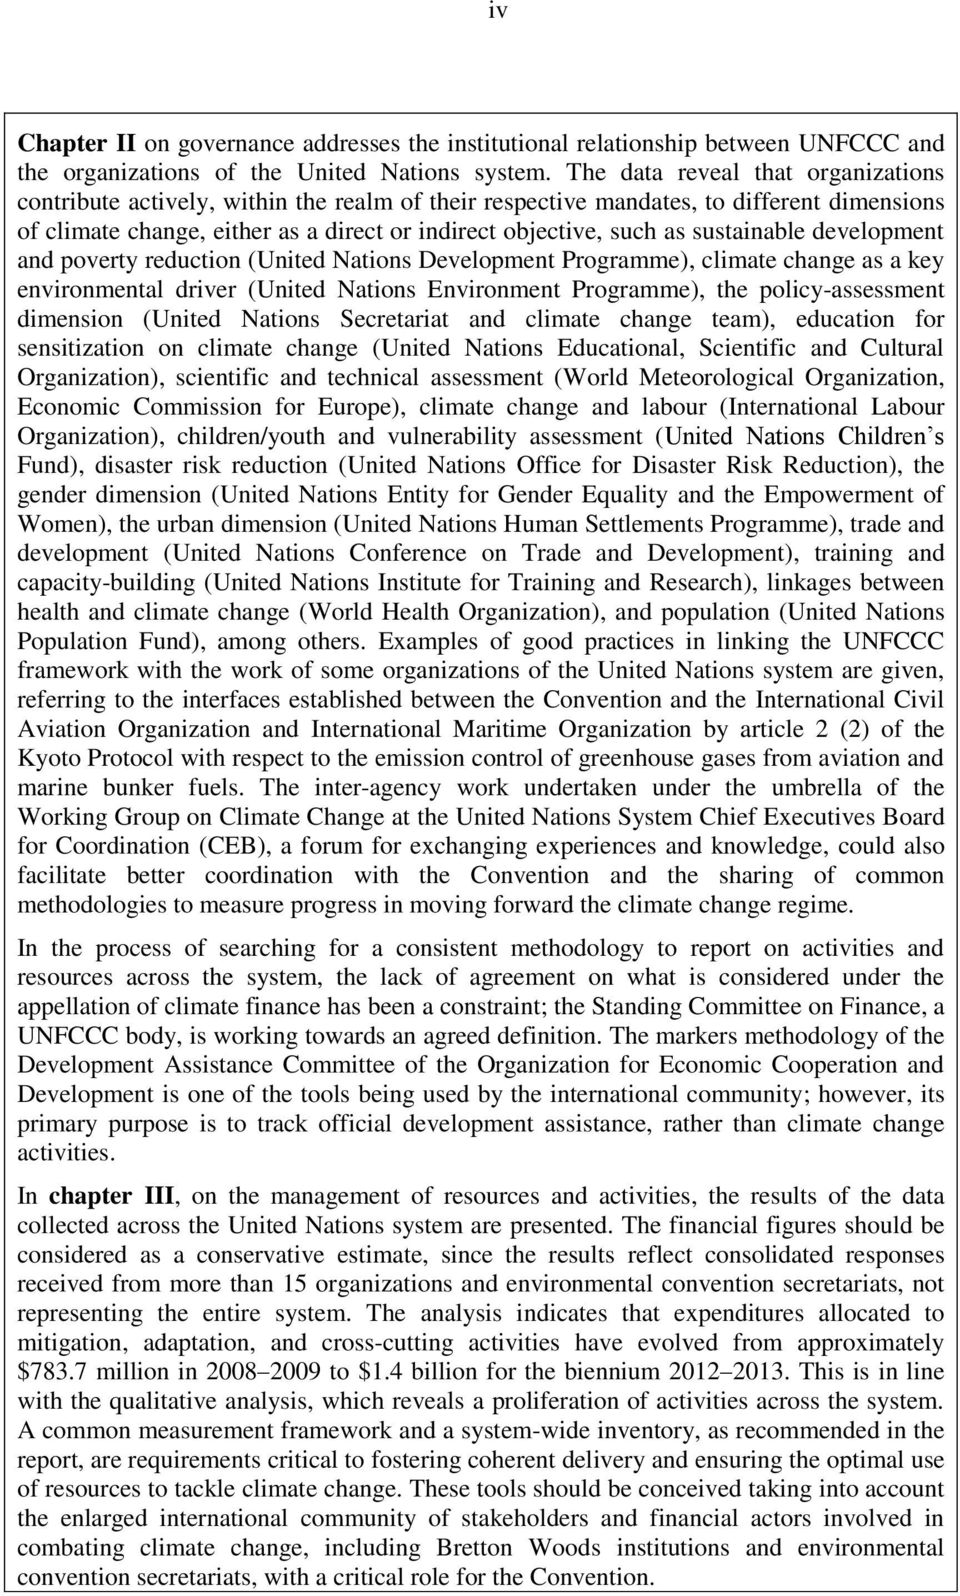 sustainable development and poverty reduction (United Nations Development Programme), climate change as a key environmental driver (United Nations Environment Programme), the policy-assessment